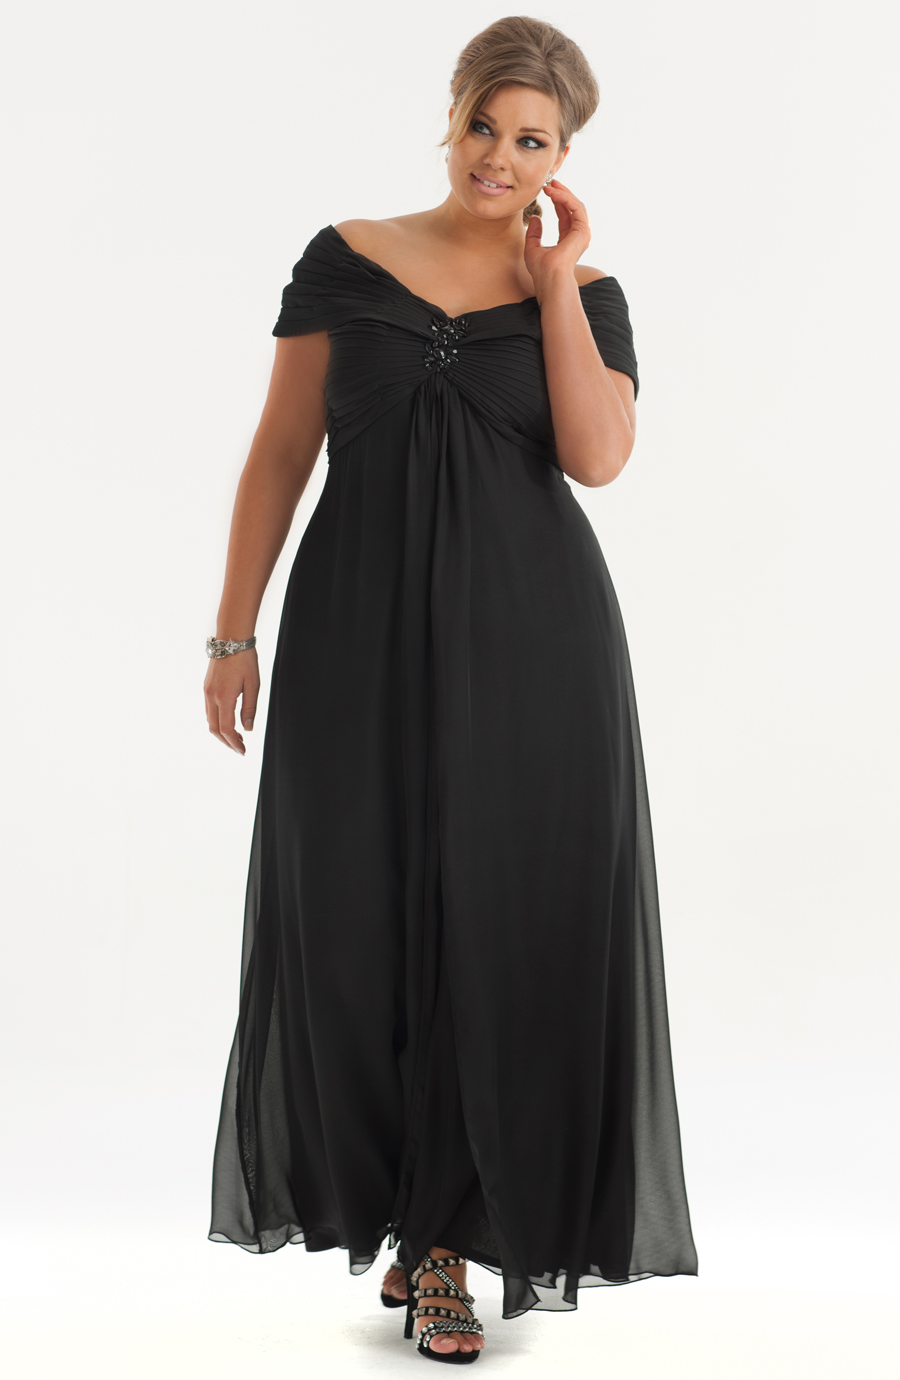 Jcpenney Evening Dresses Plus Sizes - Holiday Dresses